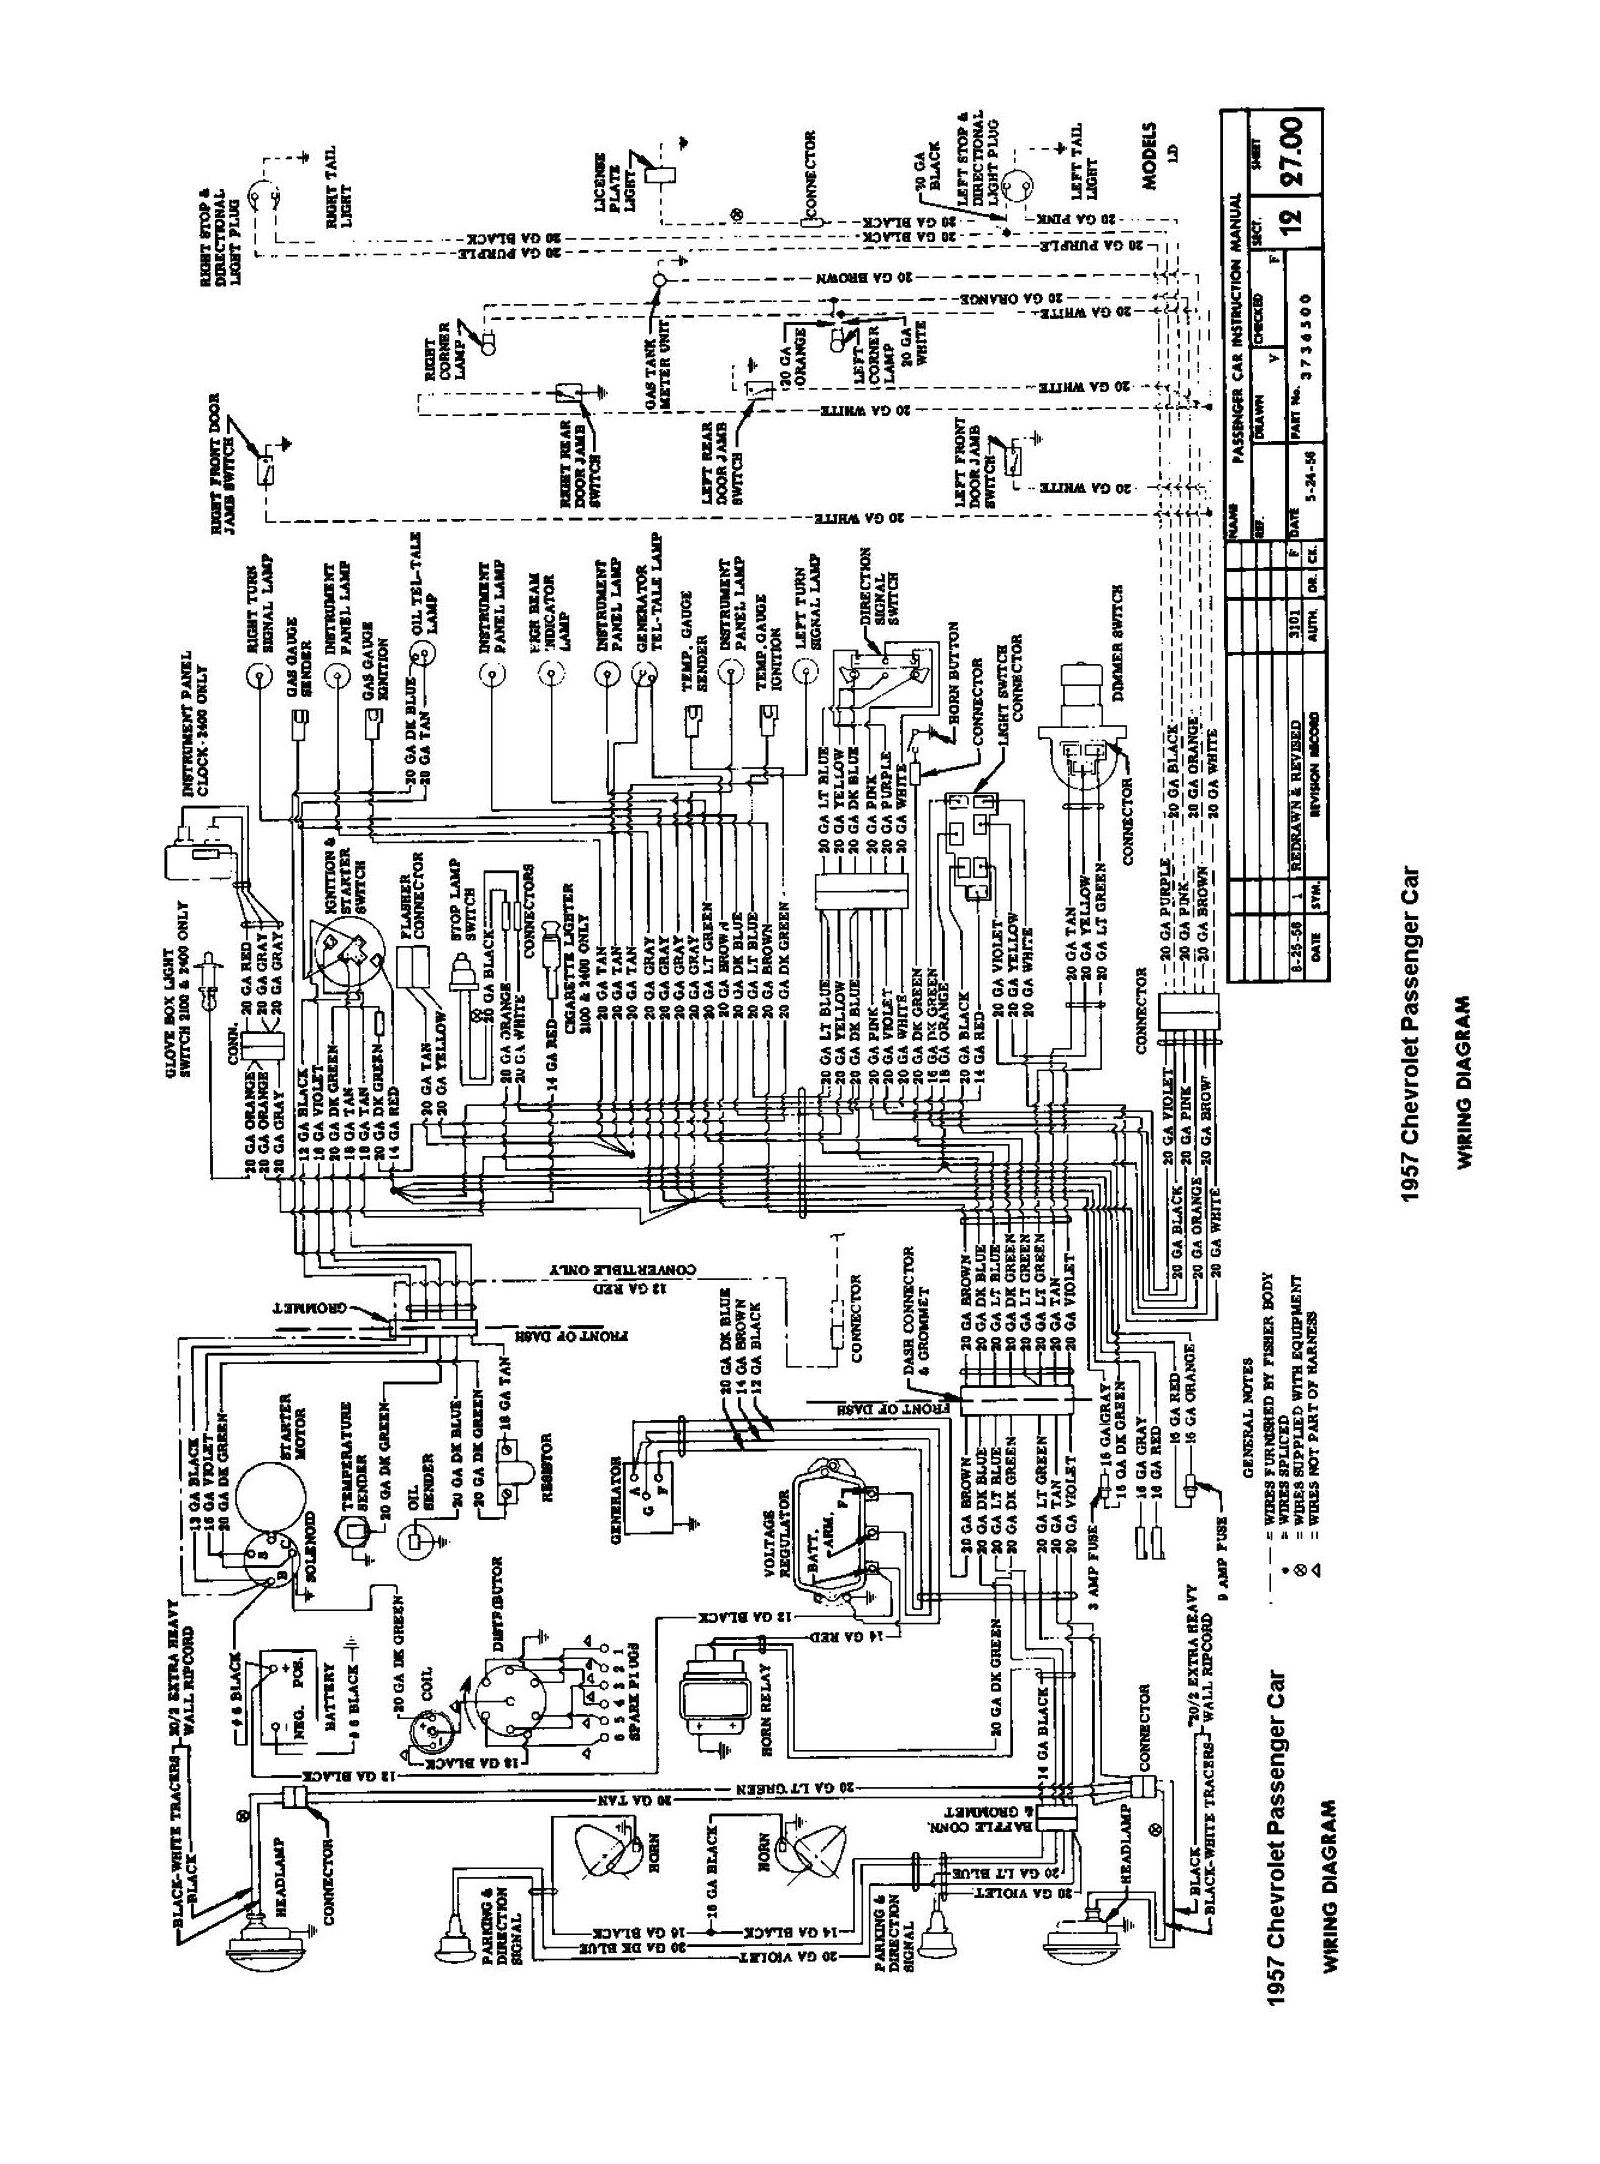 1957 Pontiac Wiring Diagram on 1961 chevy c10 wiring diagram